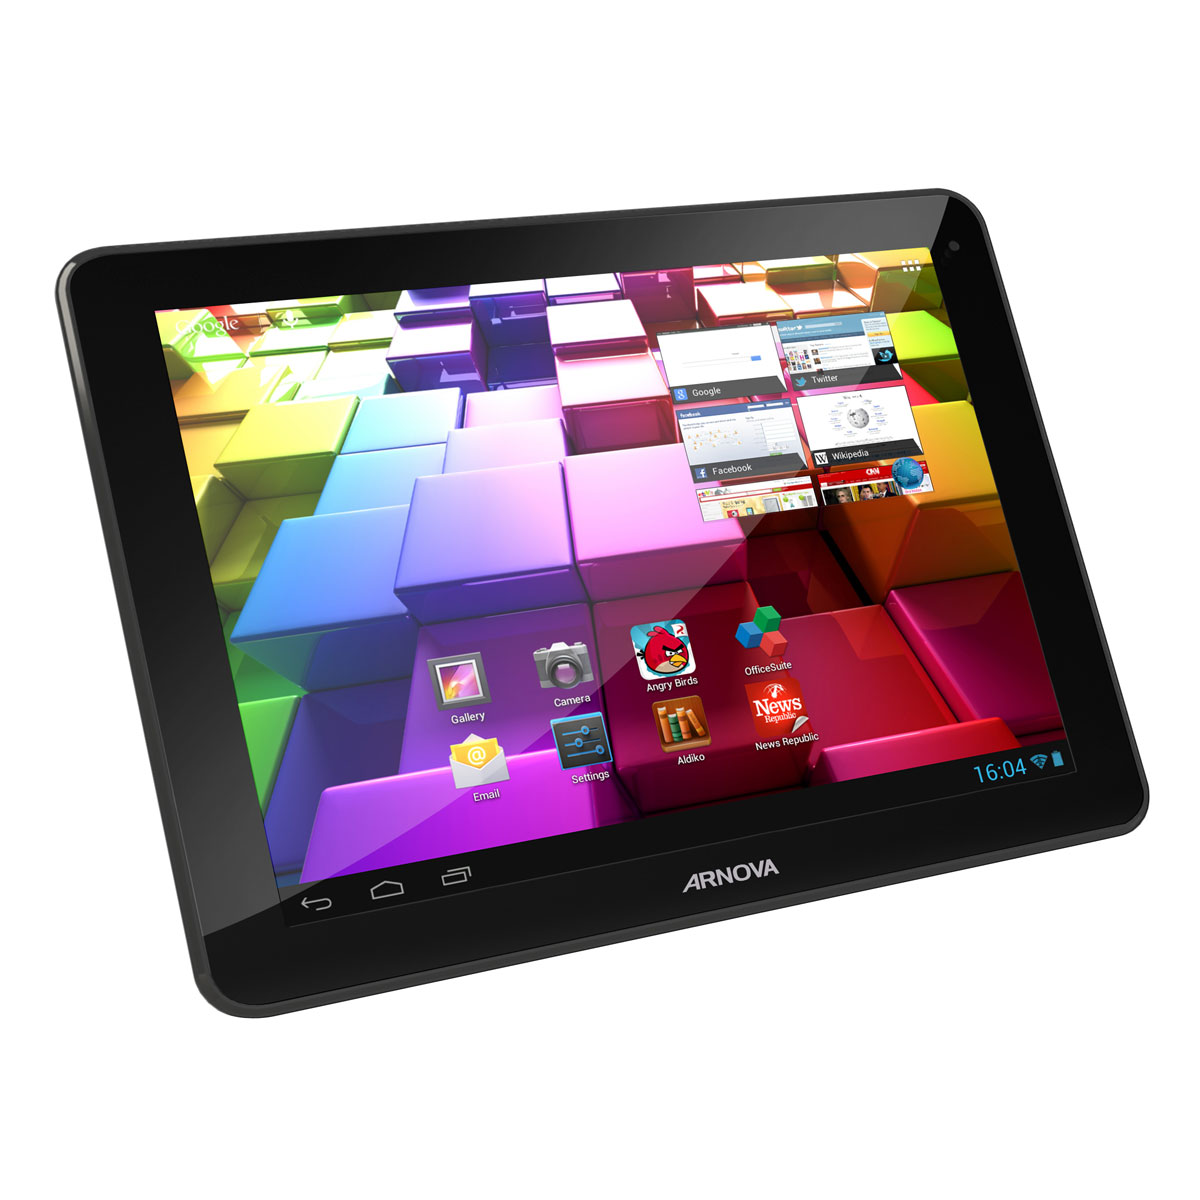 "Tablette tactile Arnova 97 G4 - 8 Go Tablette Internet - ARM Cortex A9 1.6 GHz 8 Go 9.7"" LCD tactile Wi-Fi N Webcam Android 4.1"